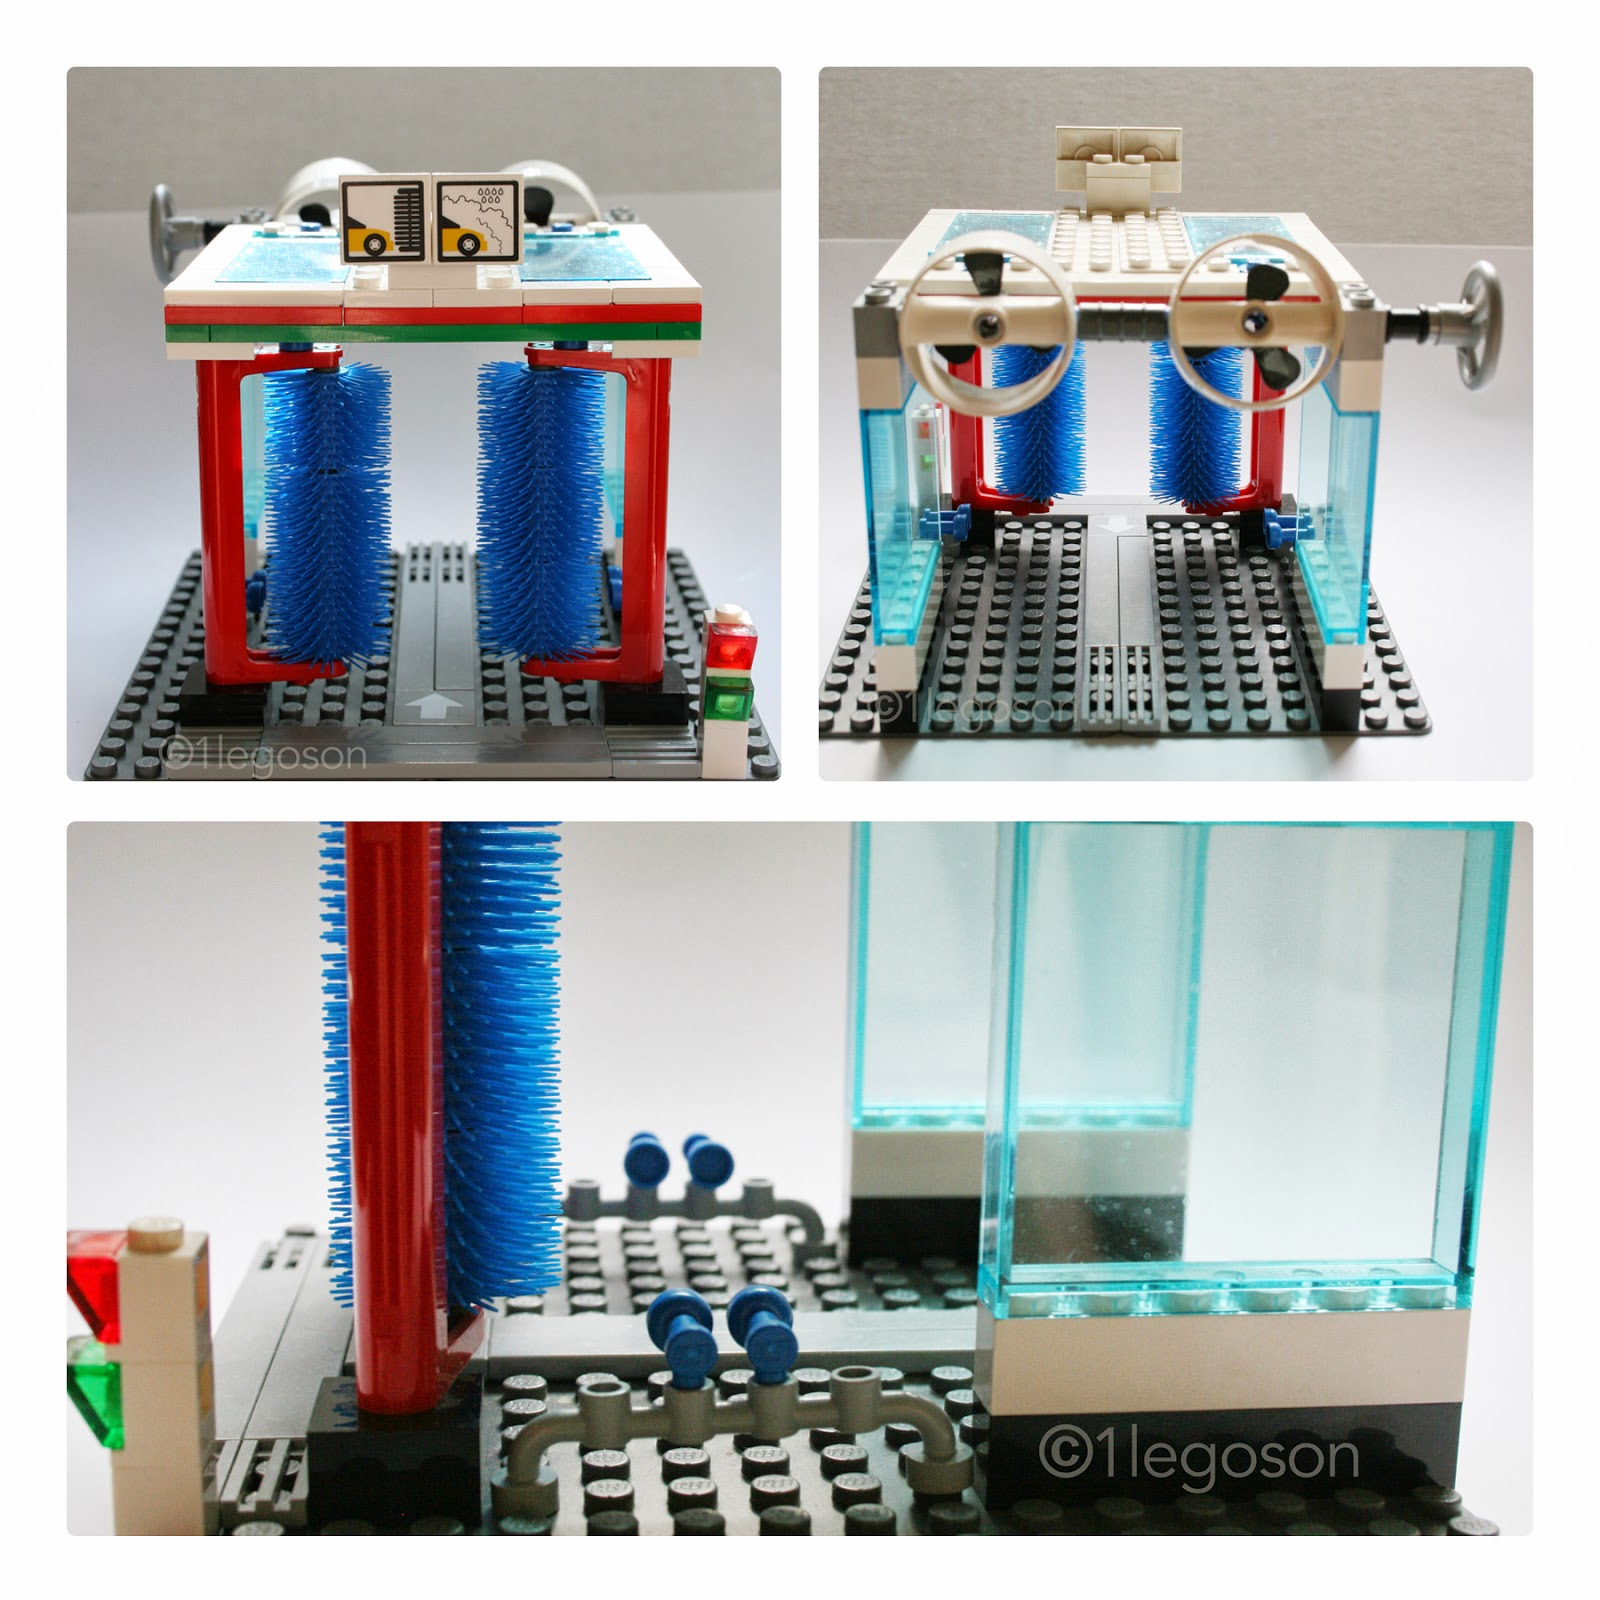 1legoson Creates Lego City The Gas Station Garage And Car Wash 7642 This Is I Think Its Really Cool Has Some Good Details